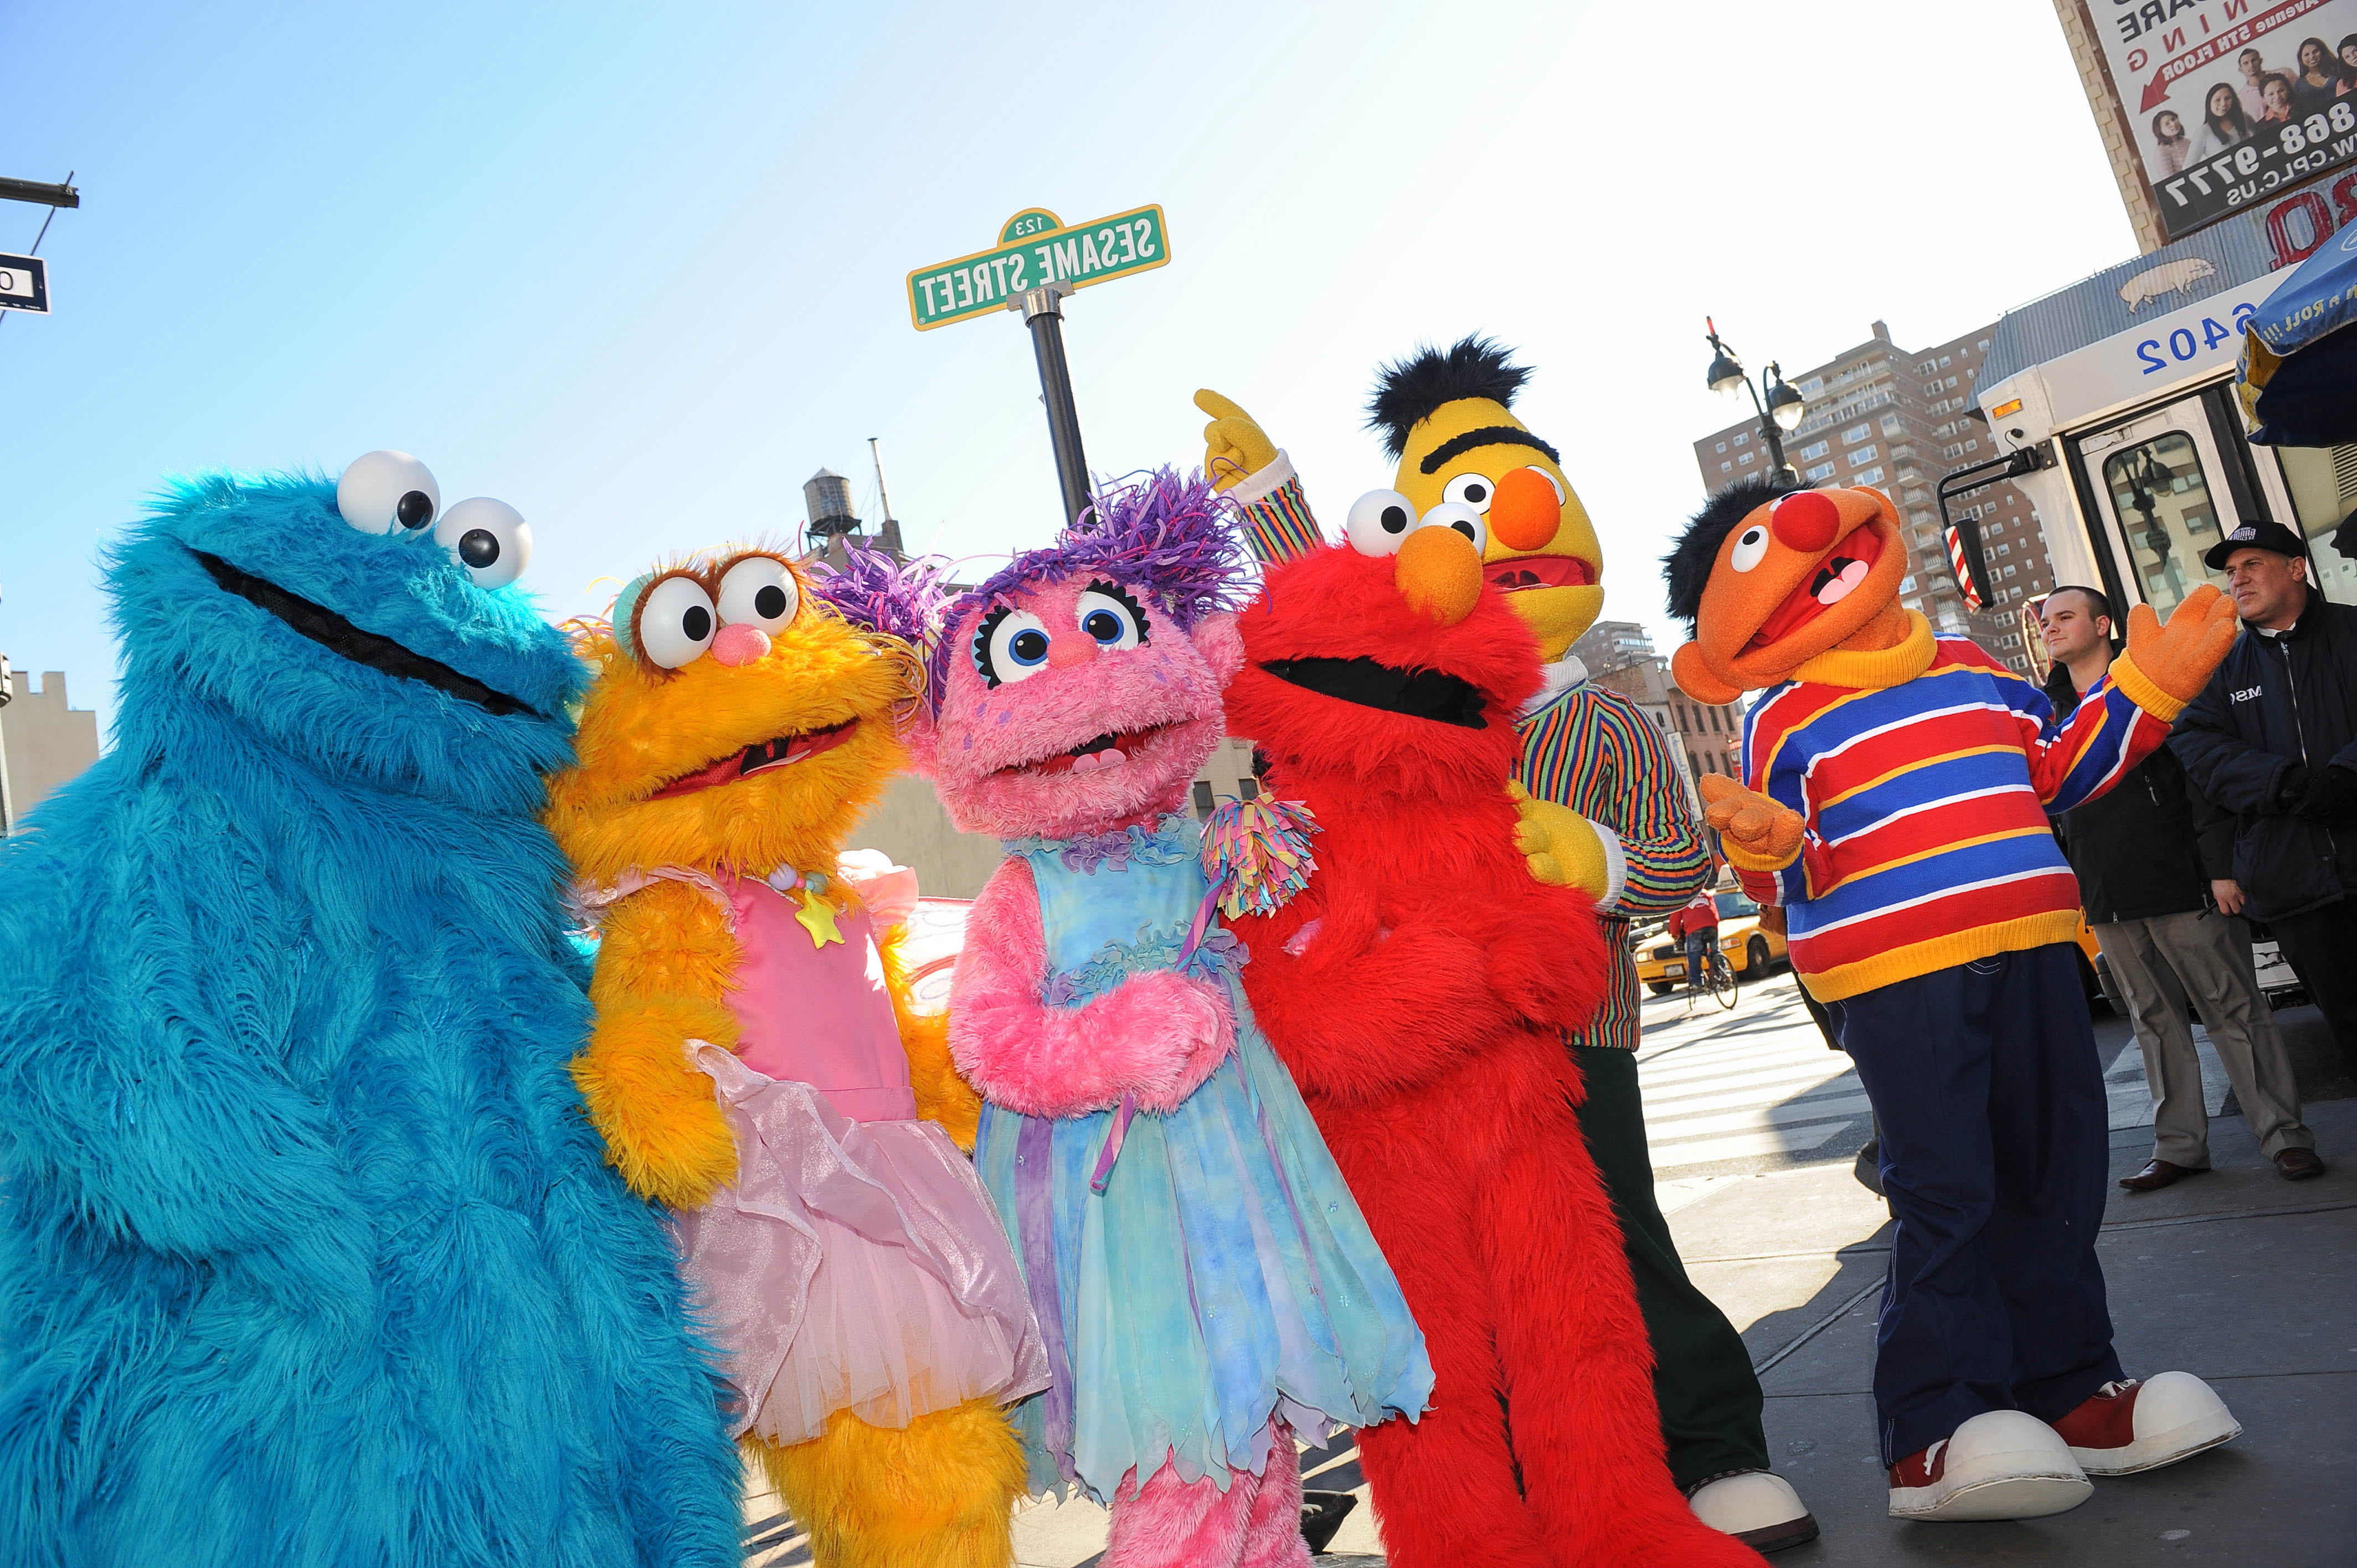 Sesame Street Awesome High Quality Hd Wallpapers All Hd Wallpapers